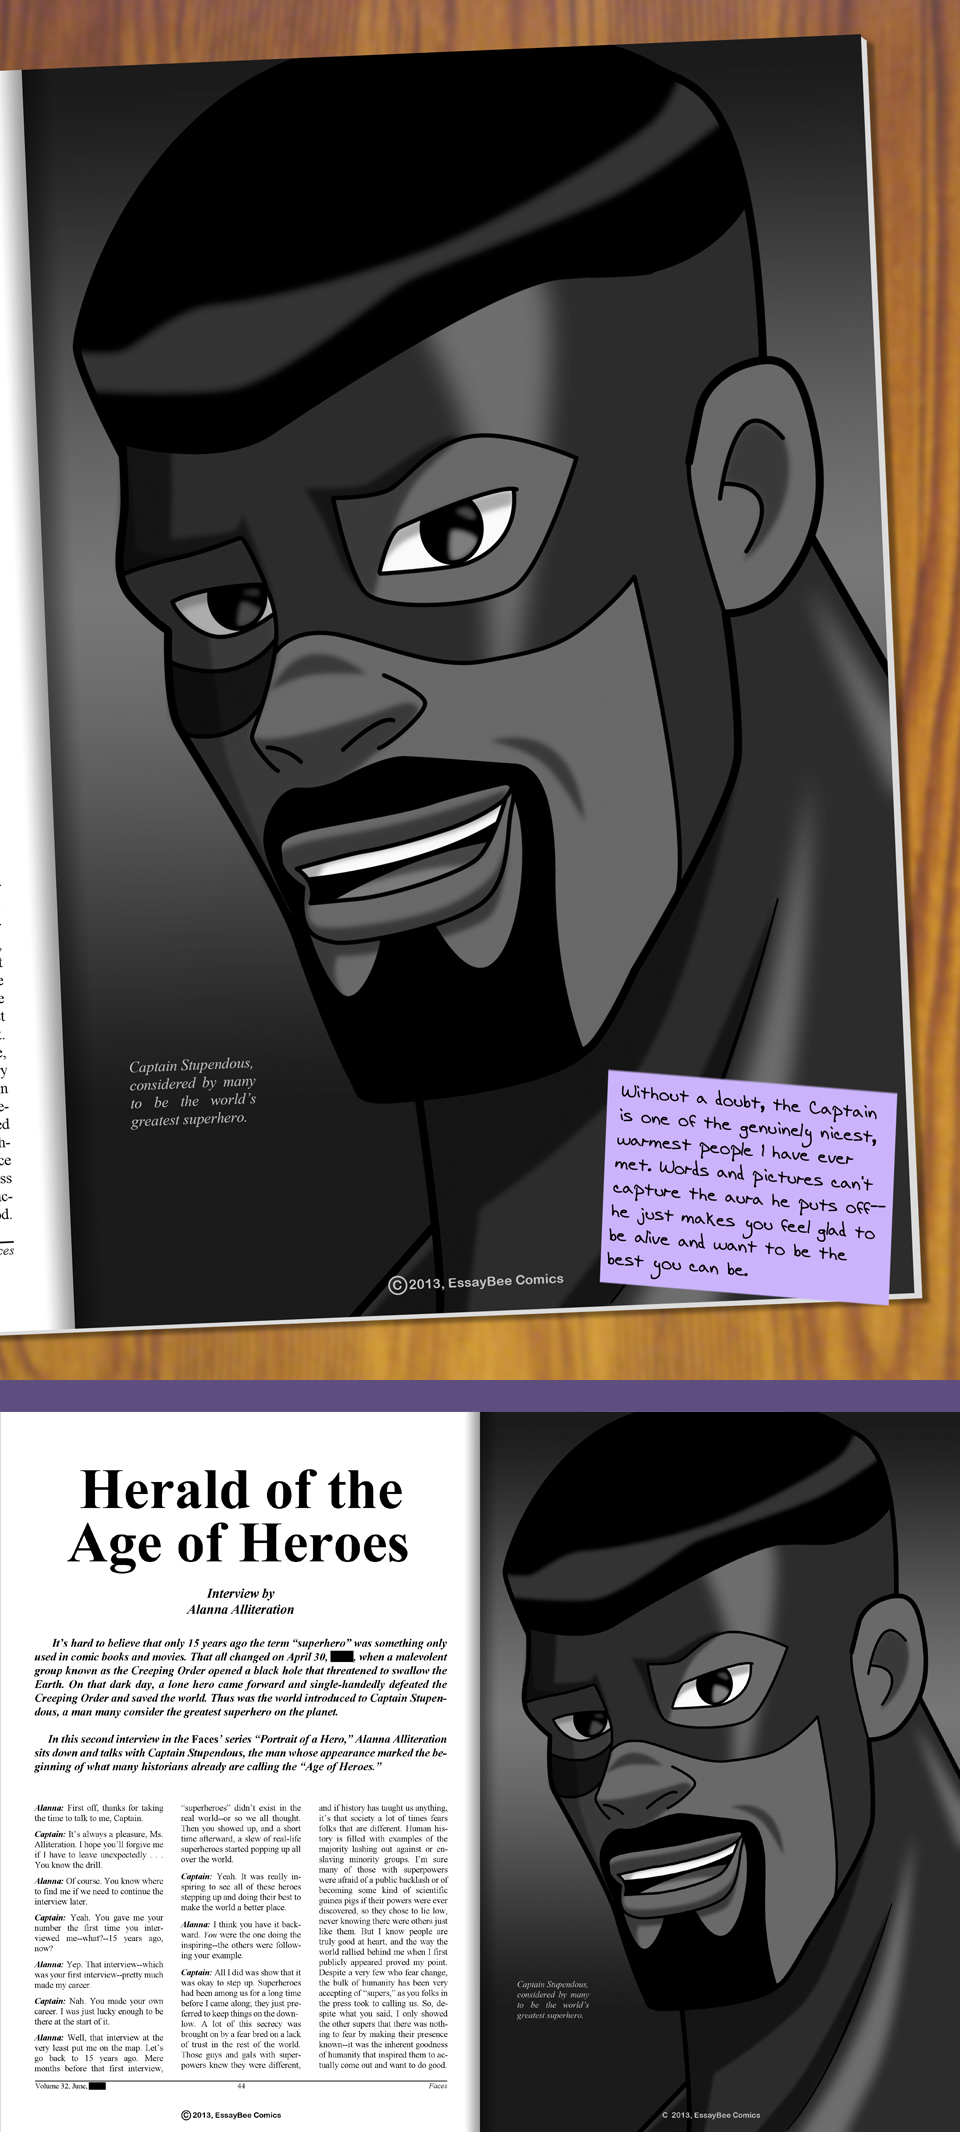 Interleude--Faces Magazine Interview 2 Page 02